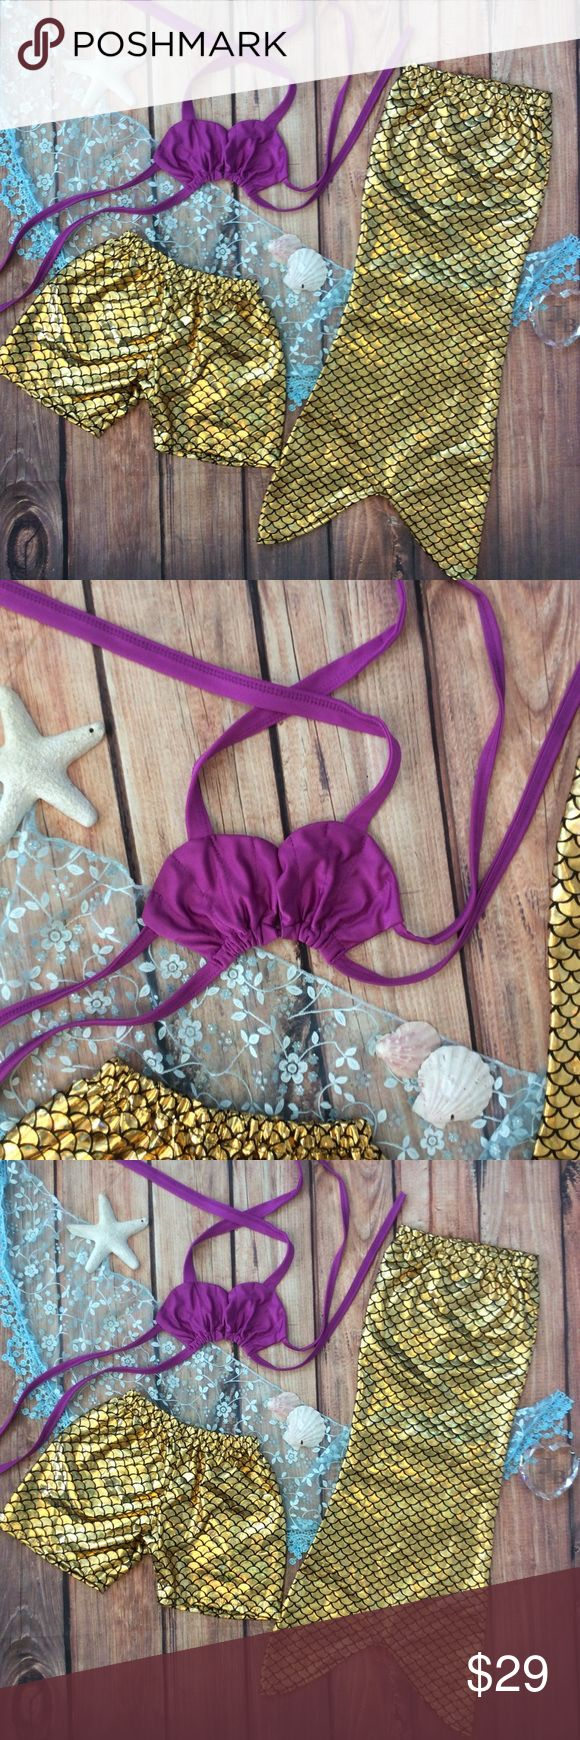 Toddler Girl Little Mermaid Purple & Gold Swimsuit Very cute little mermaid princess swimwear set. Includes purple bikini shell shaped top, holographic gold scale patterned swim shorts and mermaid coverup tail. Perfect for parties and vacations! Swim Bikinis